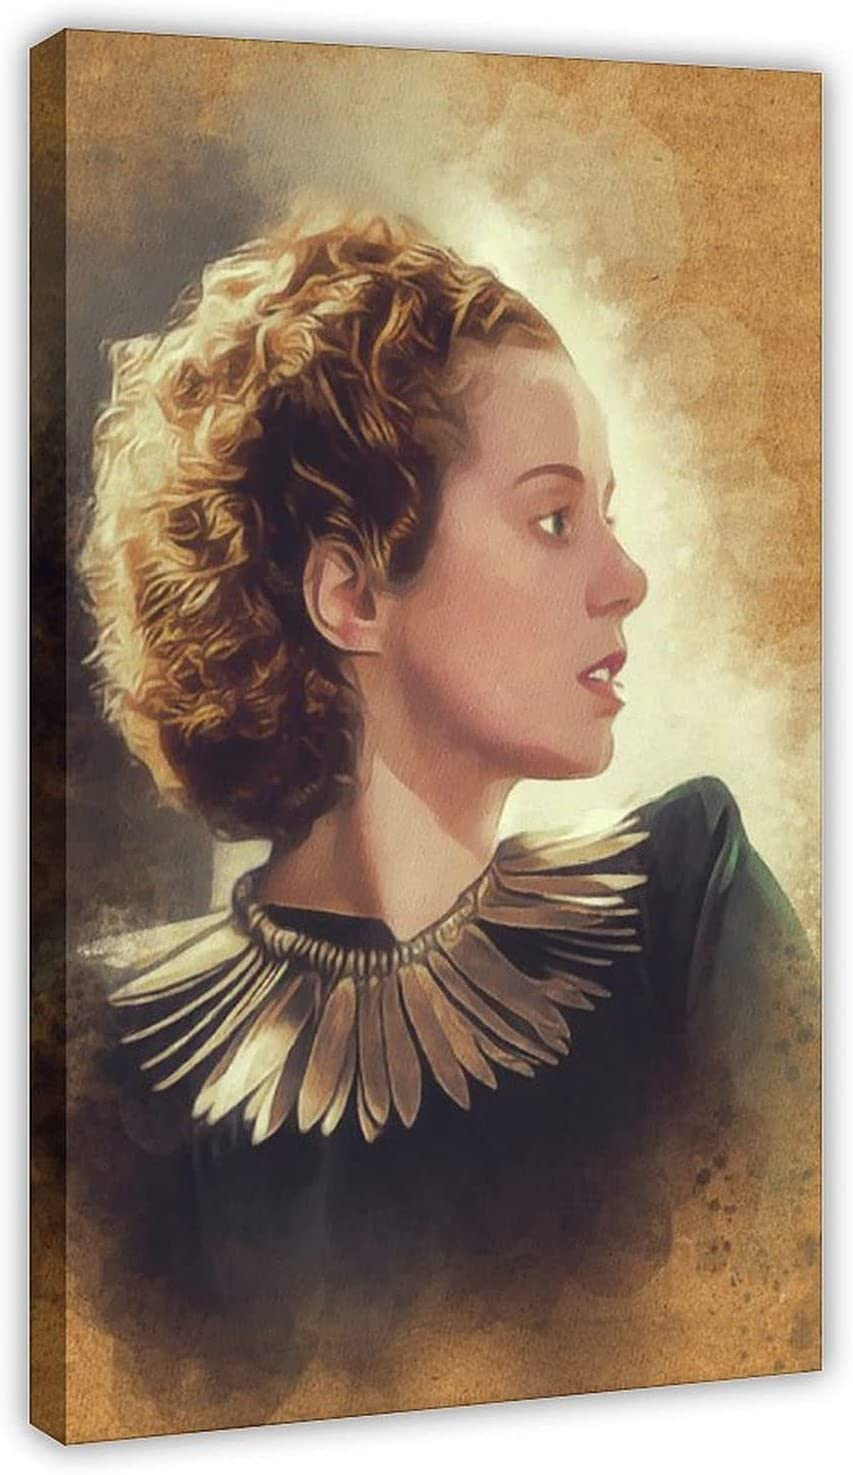 Classic Free shipping anywhere in the nation Elsa Lanchester Celebrity Wal Poster Canvas Rapid rise Retro